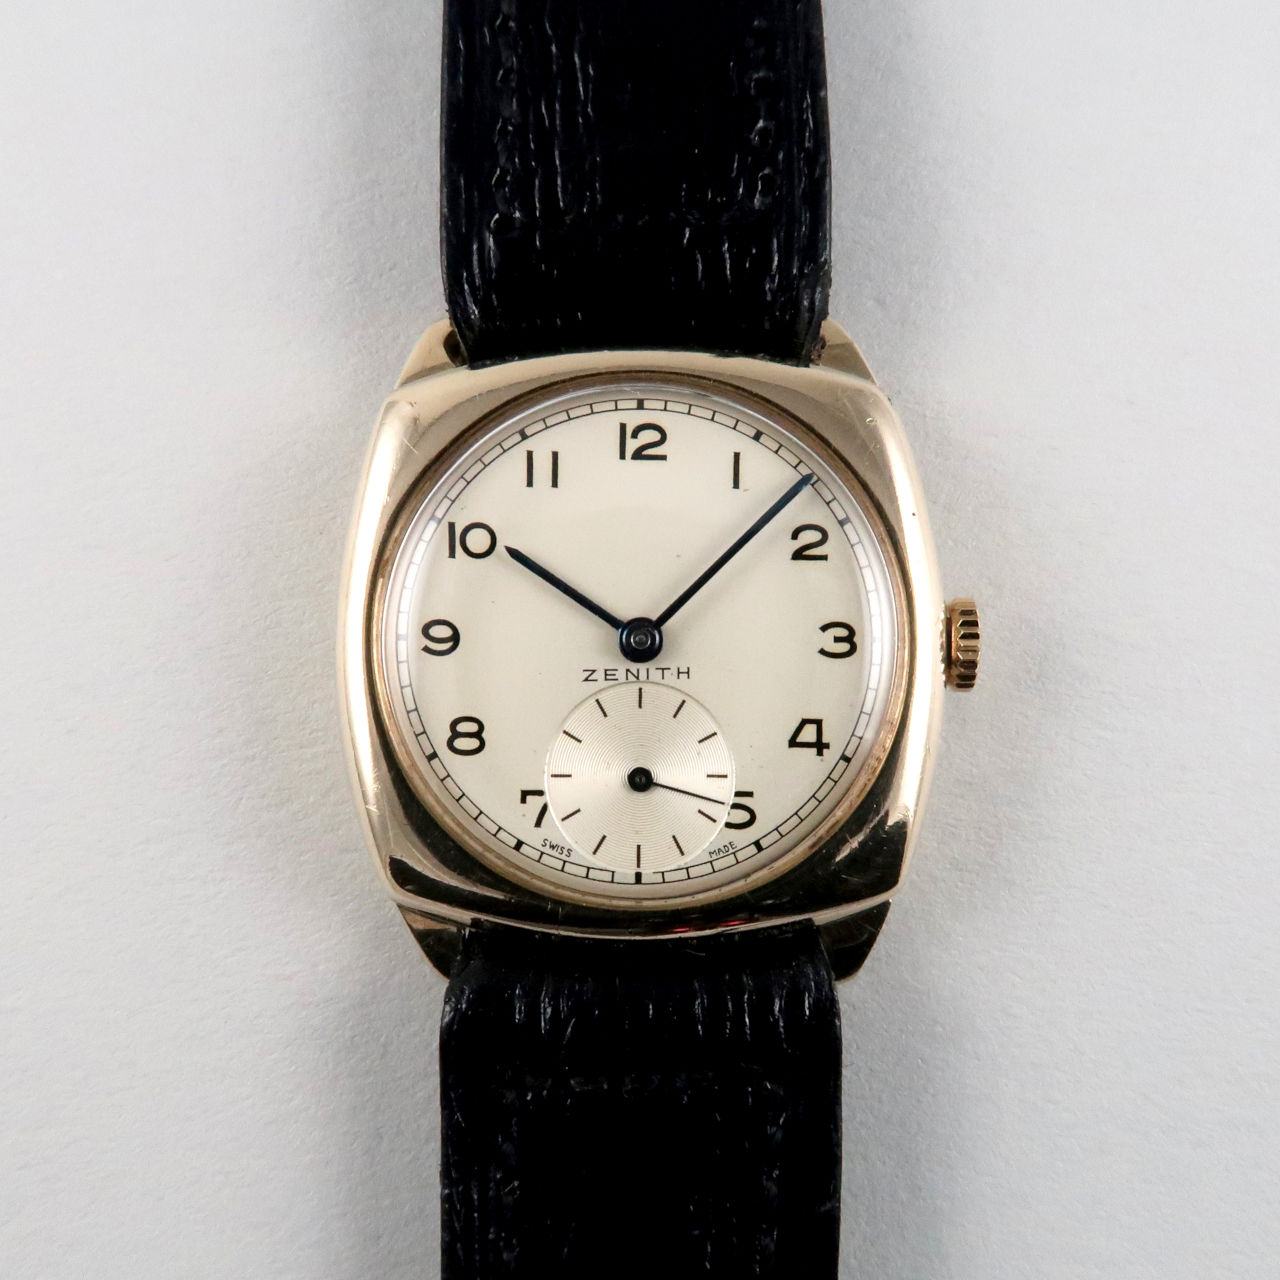 Zenith calibre 106 gold vintage wristwatch, hallmarked 1952